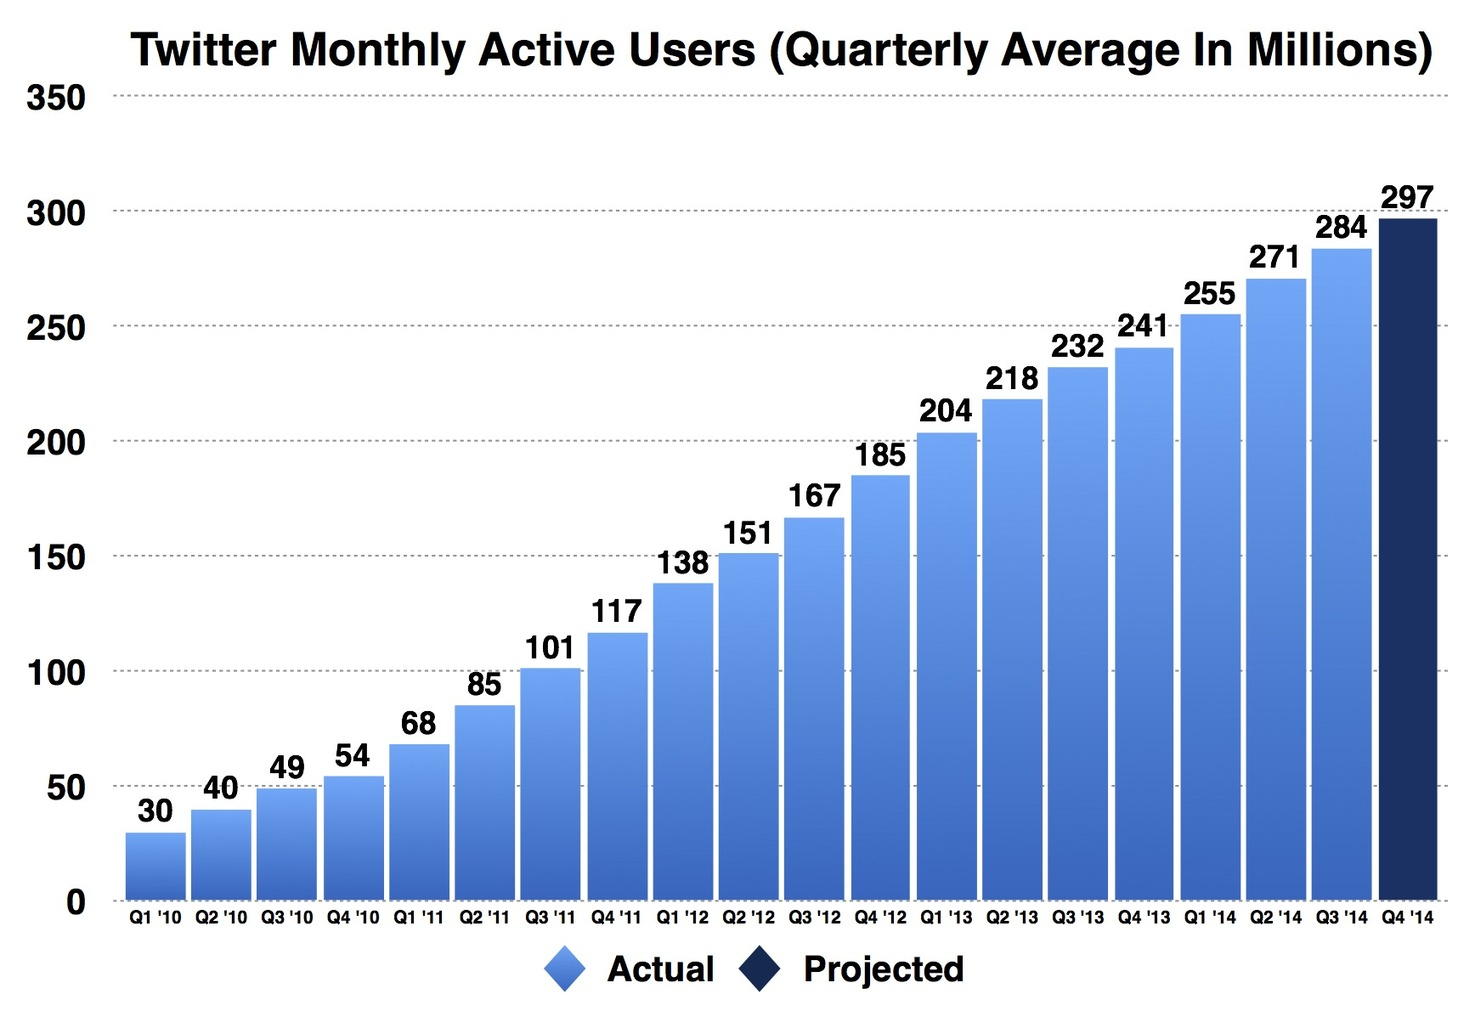 Home Design Quarter Contact Number Can Twitter Reach 300 Million Active Users Before 2015